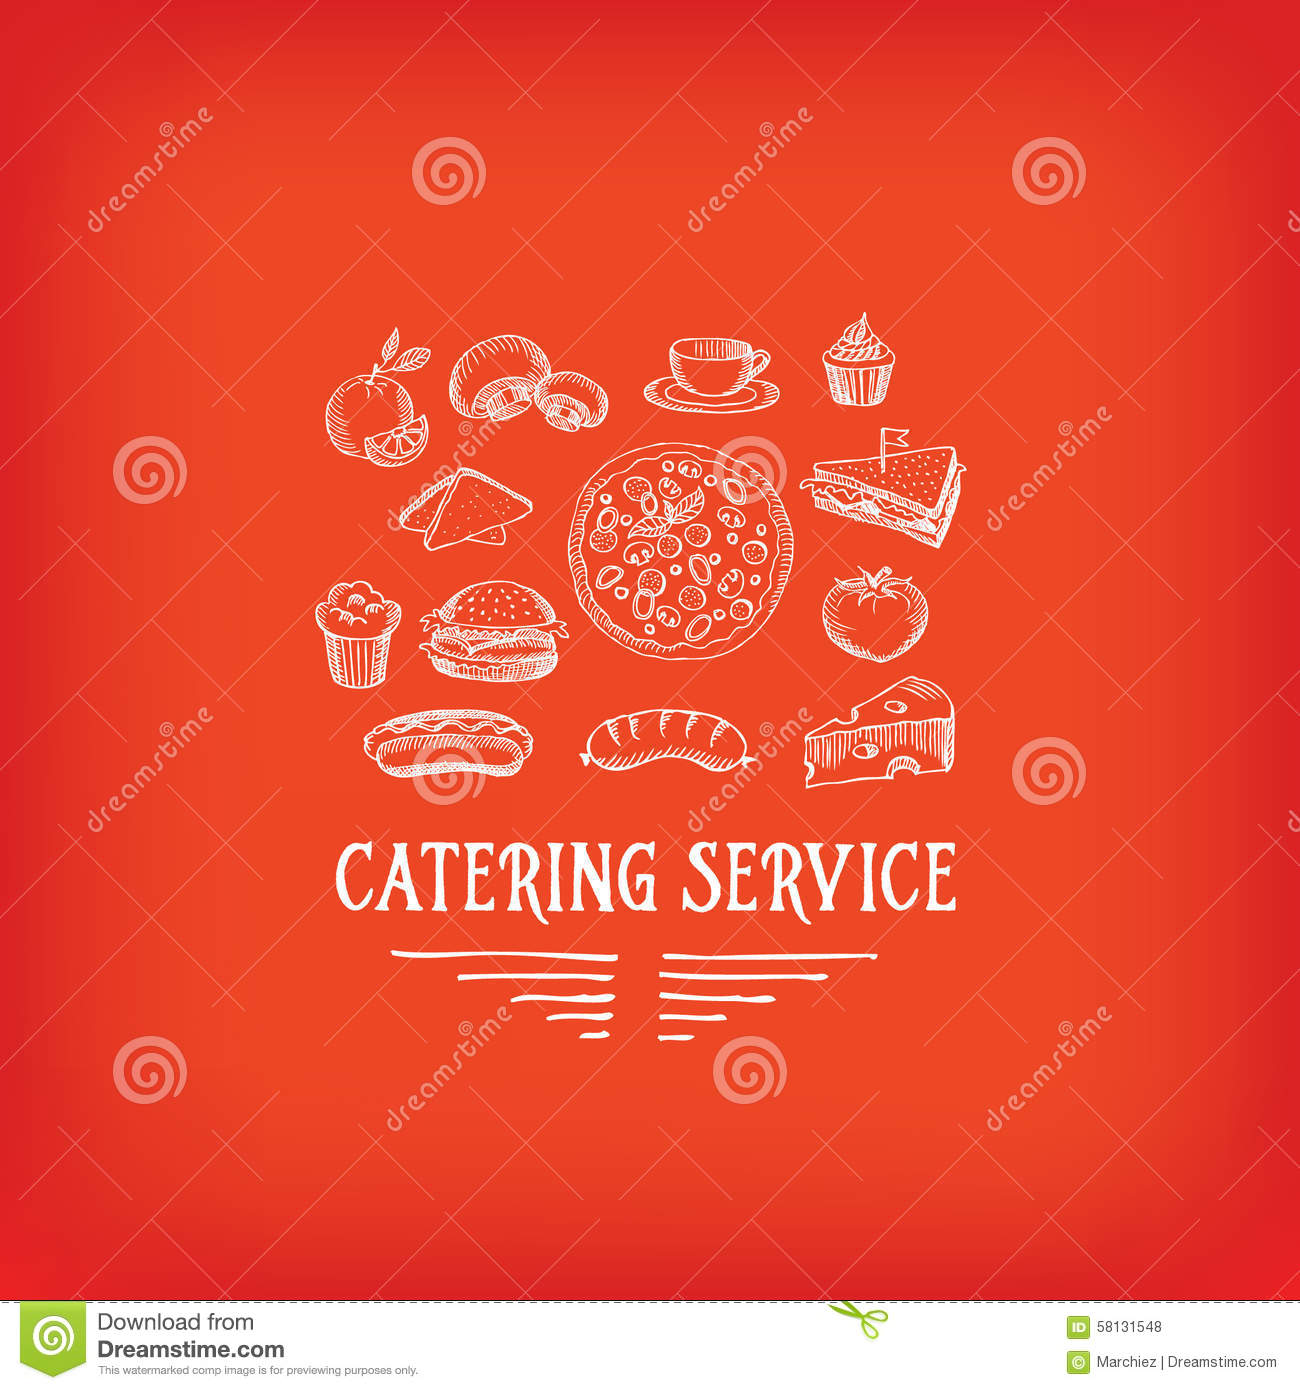 Catering service design logo stock vector image